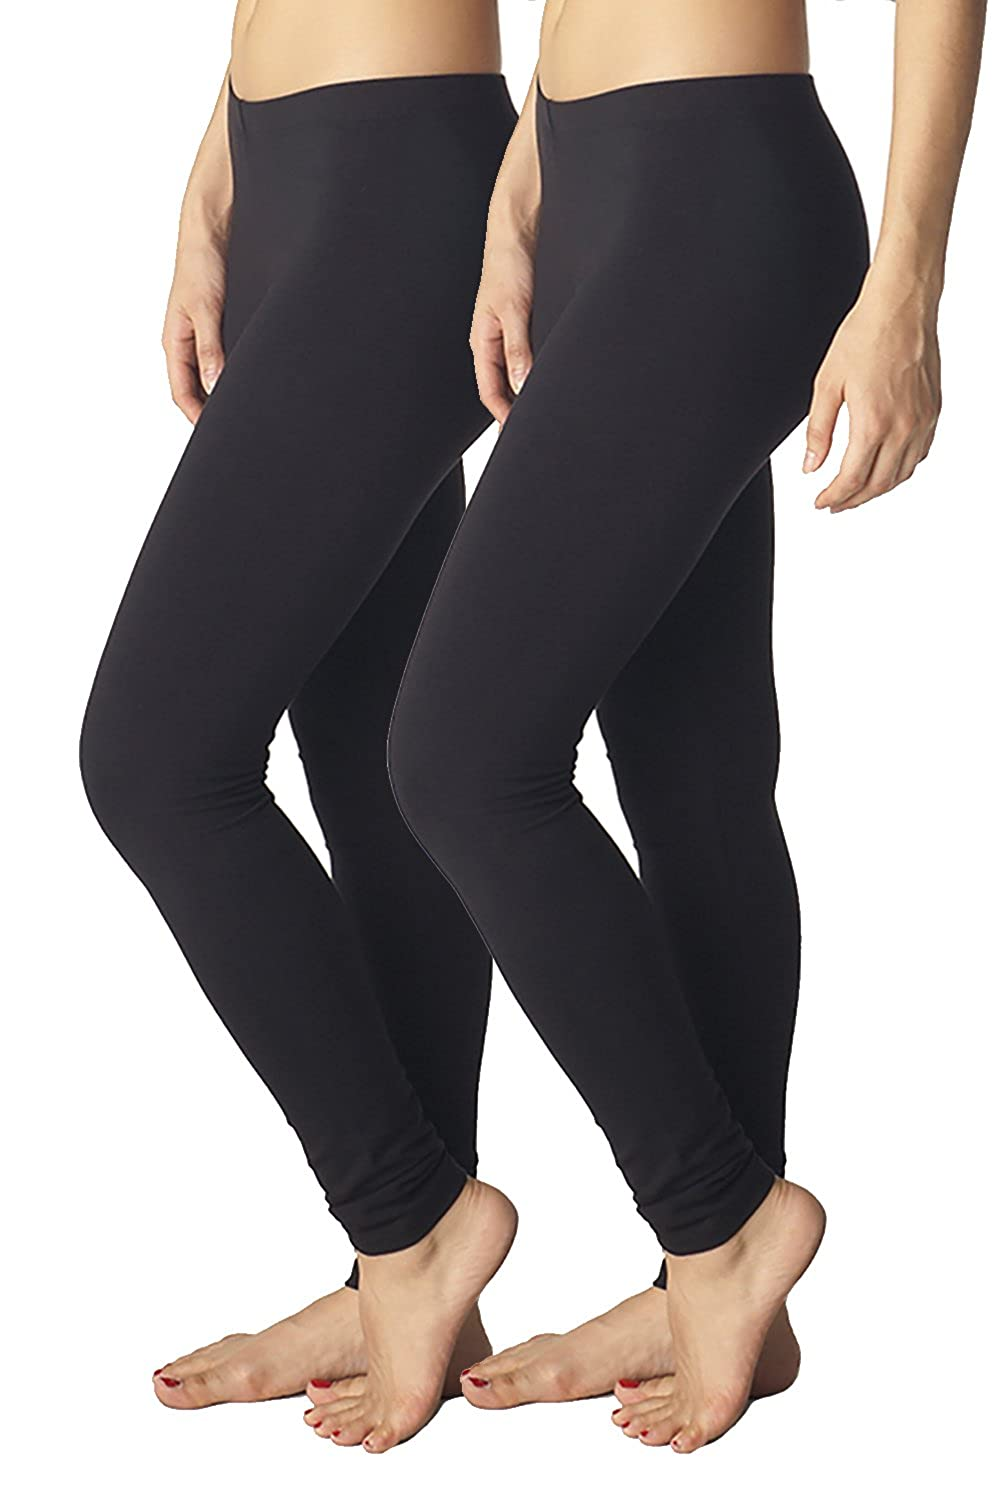 san francisco a742e 4f386 Amazon.com  In Touch 2 Pack Womens Cotton Spandex Leggings  Clothing